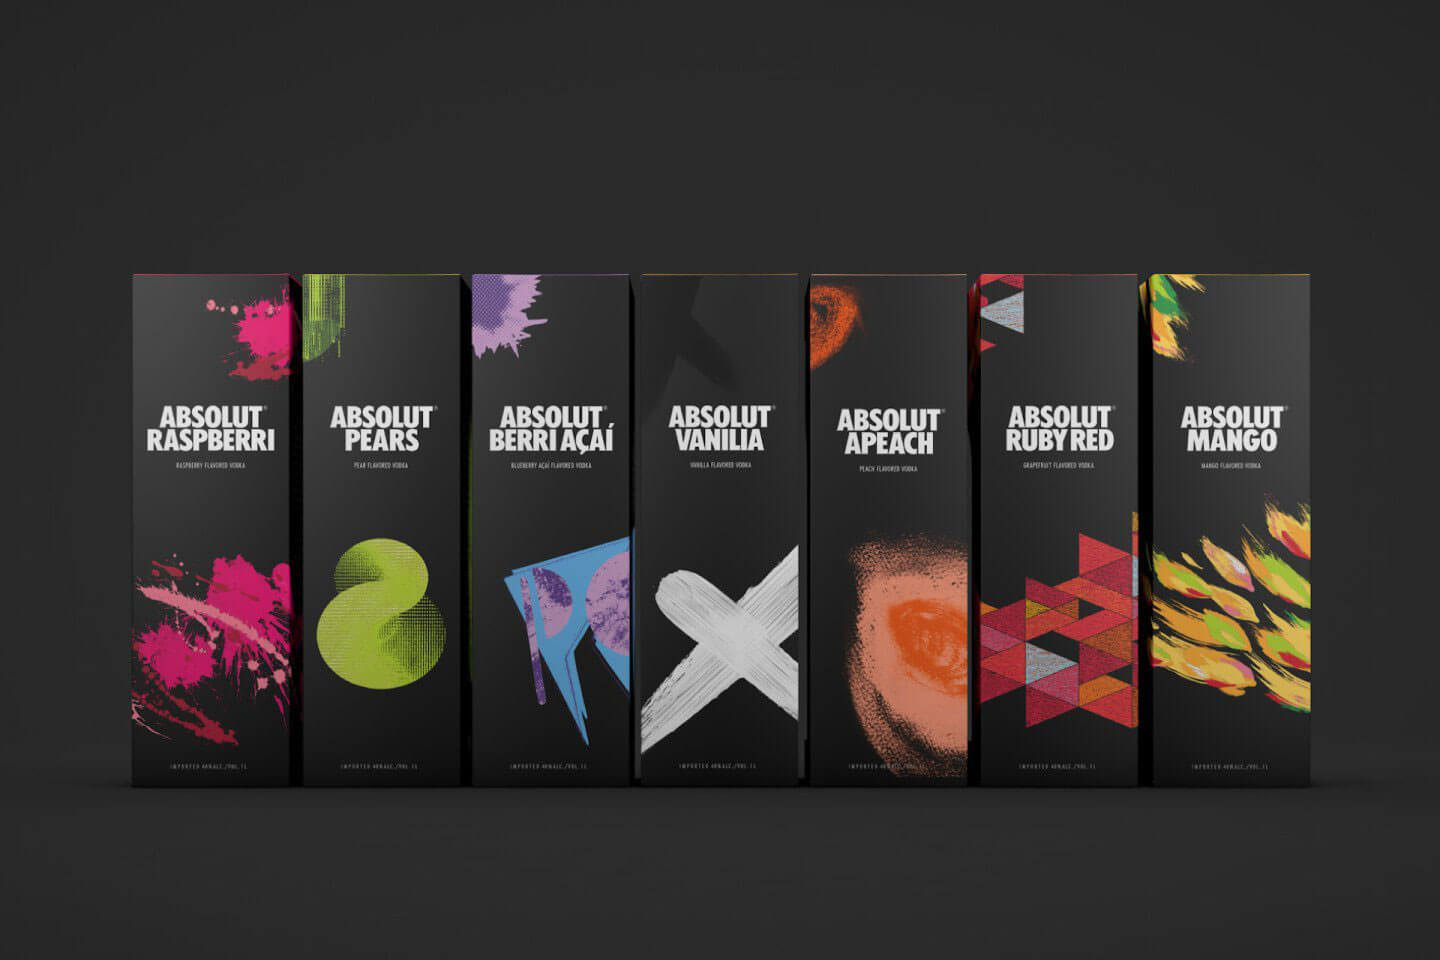 absolut_giftpacks_case_1920x1280-02-1440x960